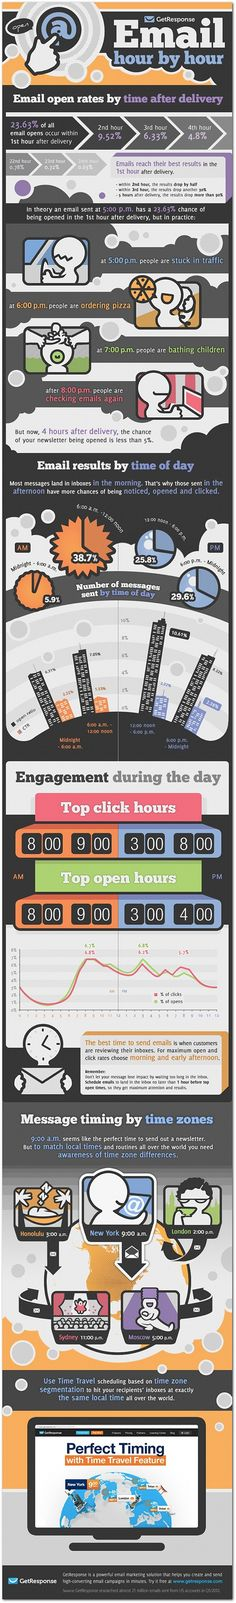 What is the Best Time to Send My Email Marketing Campaigns? [Infographic] - George Levy - Digital Marketing and Customer Relationship Management (CRM) Expert E-mail Marketing, Affiliate Marketing, Direct Marketing, Business Marketing, Content Marketing, Internet Marketing, Online Marketing, Social Media Marketing, Digital Marketing